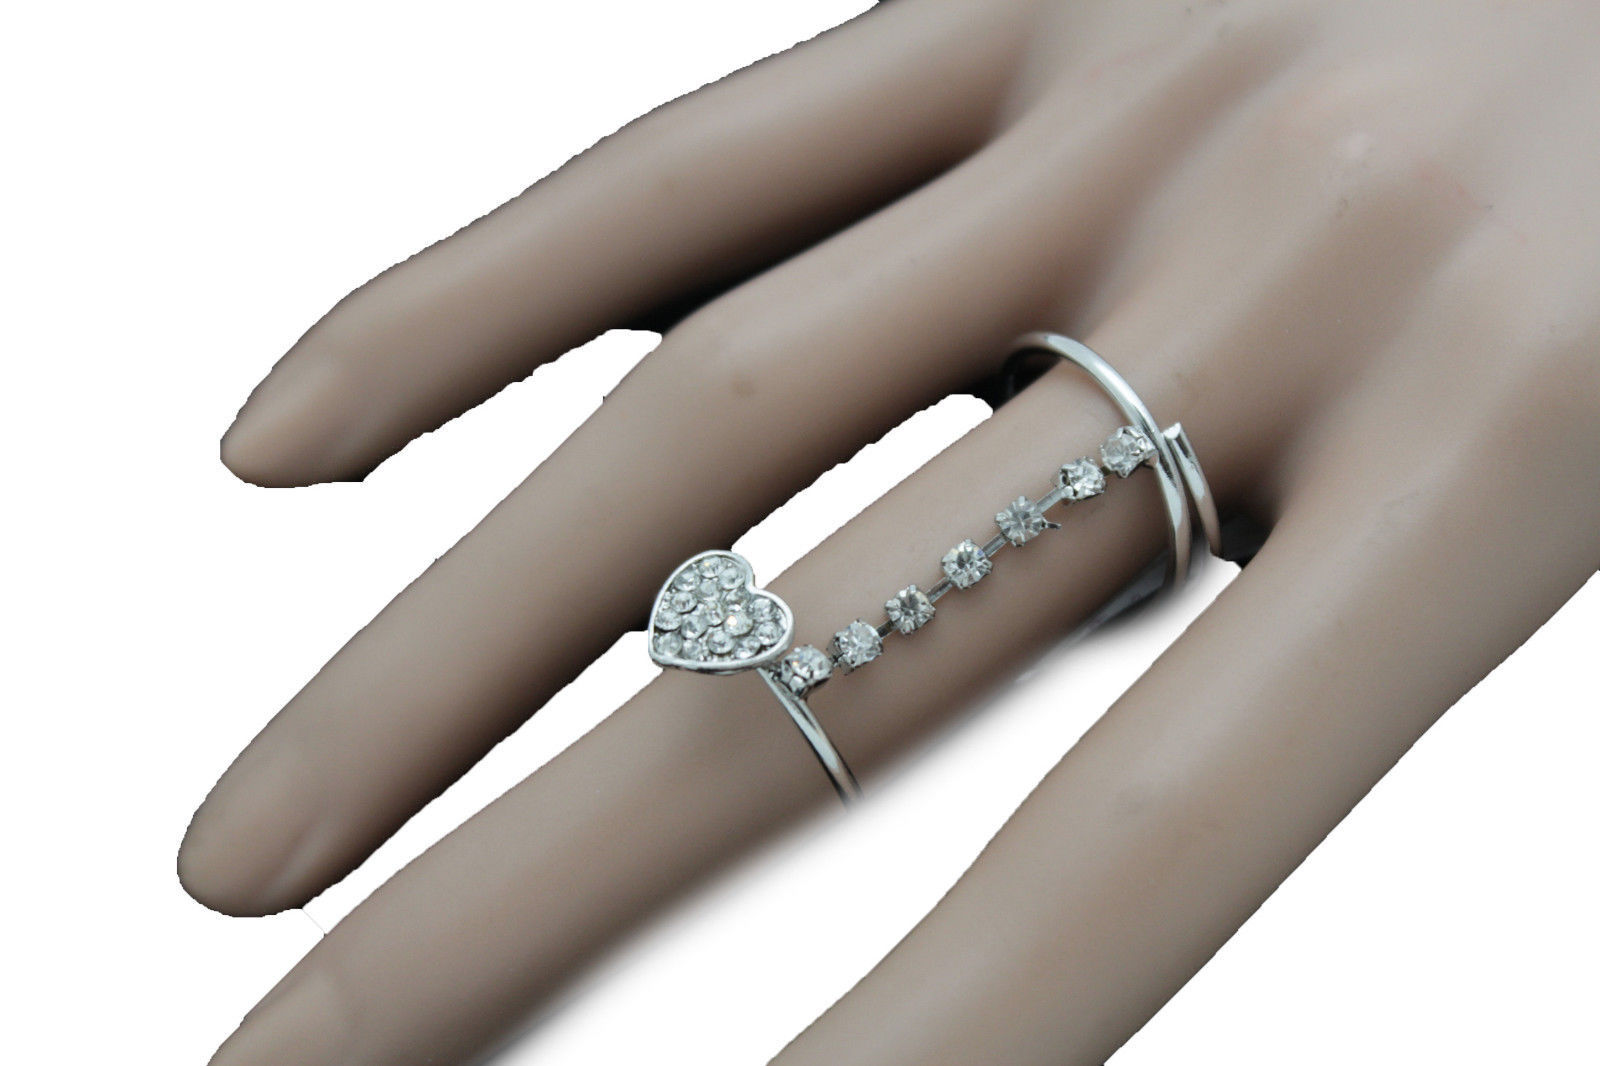 Women Silver Metal Fashion Jewelry Ring Long Finger Size 8 Band Heart Love Beads